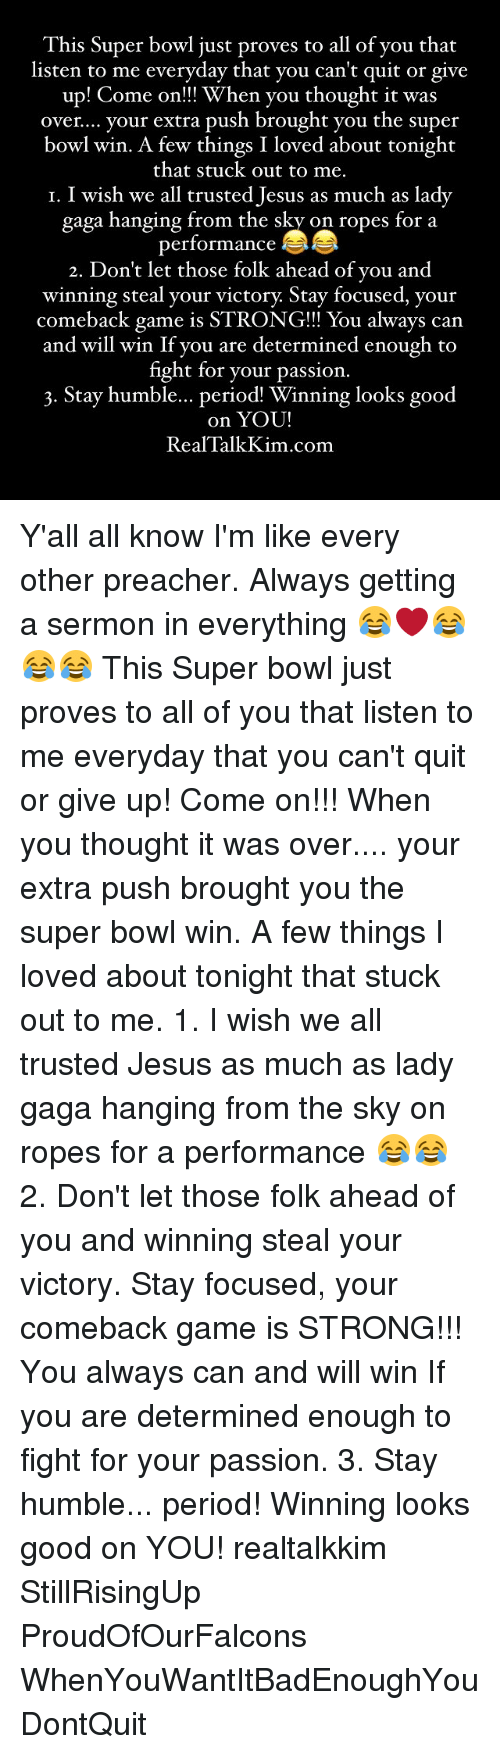 determinant: This Super bowl just proves to all of you that  listen to me everyday that you can't quit or give  up! Come on!!! When you thought it was  over.... your extra push brought you the super  bowl win. A few things I loved about tonight  that stuck out to me  I. I wish we all trusted Jesus as much as lady  gaga hanging from the sky on ropes for a  performance  2. Don't let those folk ahead of you and  winning steal your victory Stay focused, your  comeback game is STRONG!!! You always can  and will win If you are determined enough to  fight for your passion.  3. Stay humble... period Winning looks good  on YOU!  Real Talk Kim com Y'all all know I'm like every other preacher. Always getting a sermon in everything 😂❤️😂😂😂 This Super bowl just proves to all of you that listen to me everyday that you can't quit or give up! Come on!!! When you thought it was over.... your extra push brought you the super bowl win. A few things I loved about tonight that stuck out to me. 1. I wish we all trusted Jesus as much as lady gaga hanging from the sky on ropes for a performance 😂😂 2. Don't let those folk ahead of you and winning steal your victory. Stay focused, your comeback game is STRONG!!! You always can and will win If you are determined enough to fight for your passion. 3. Stay humble... period! Winning looks good on YOU! realtalkkim StillRisingUp ProudOfOurFalcons WhenYouWantItBadEnoughYouDontQuit